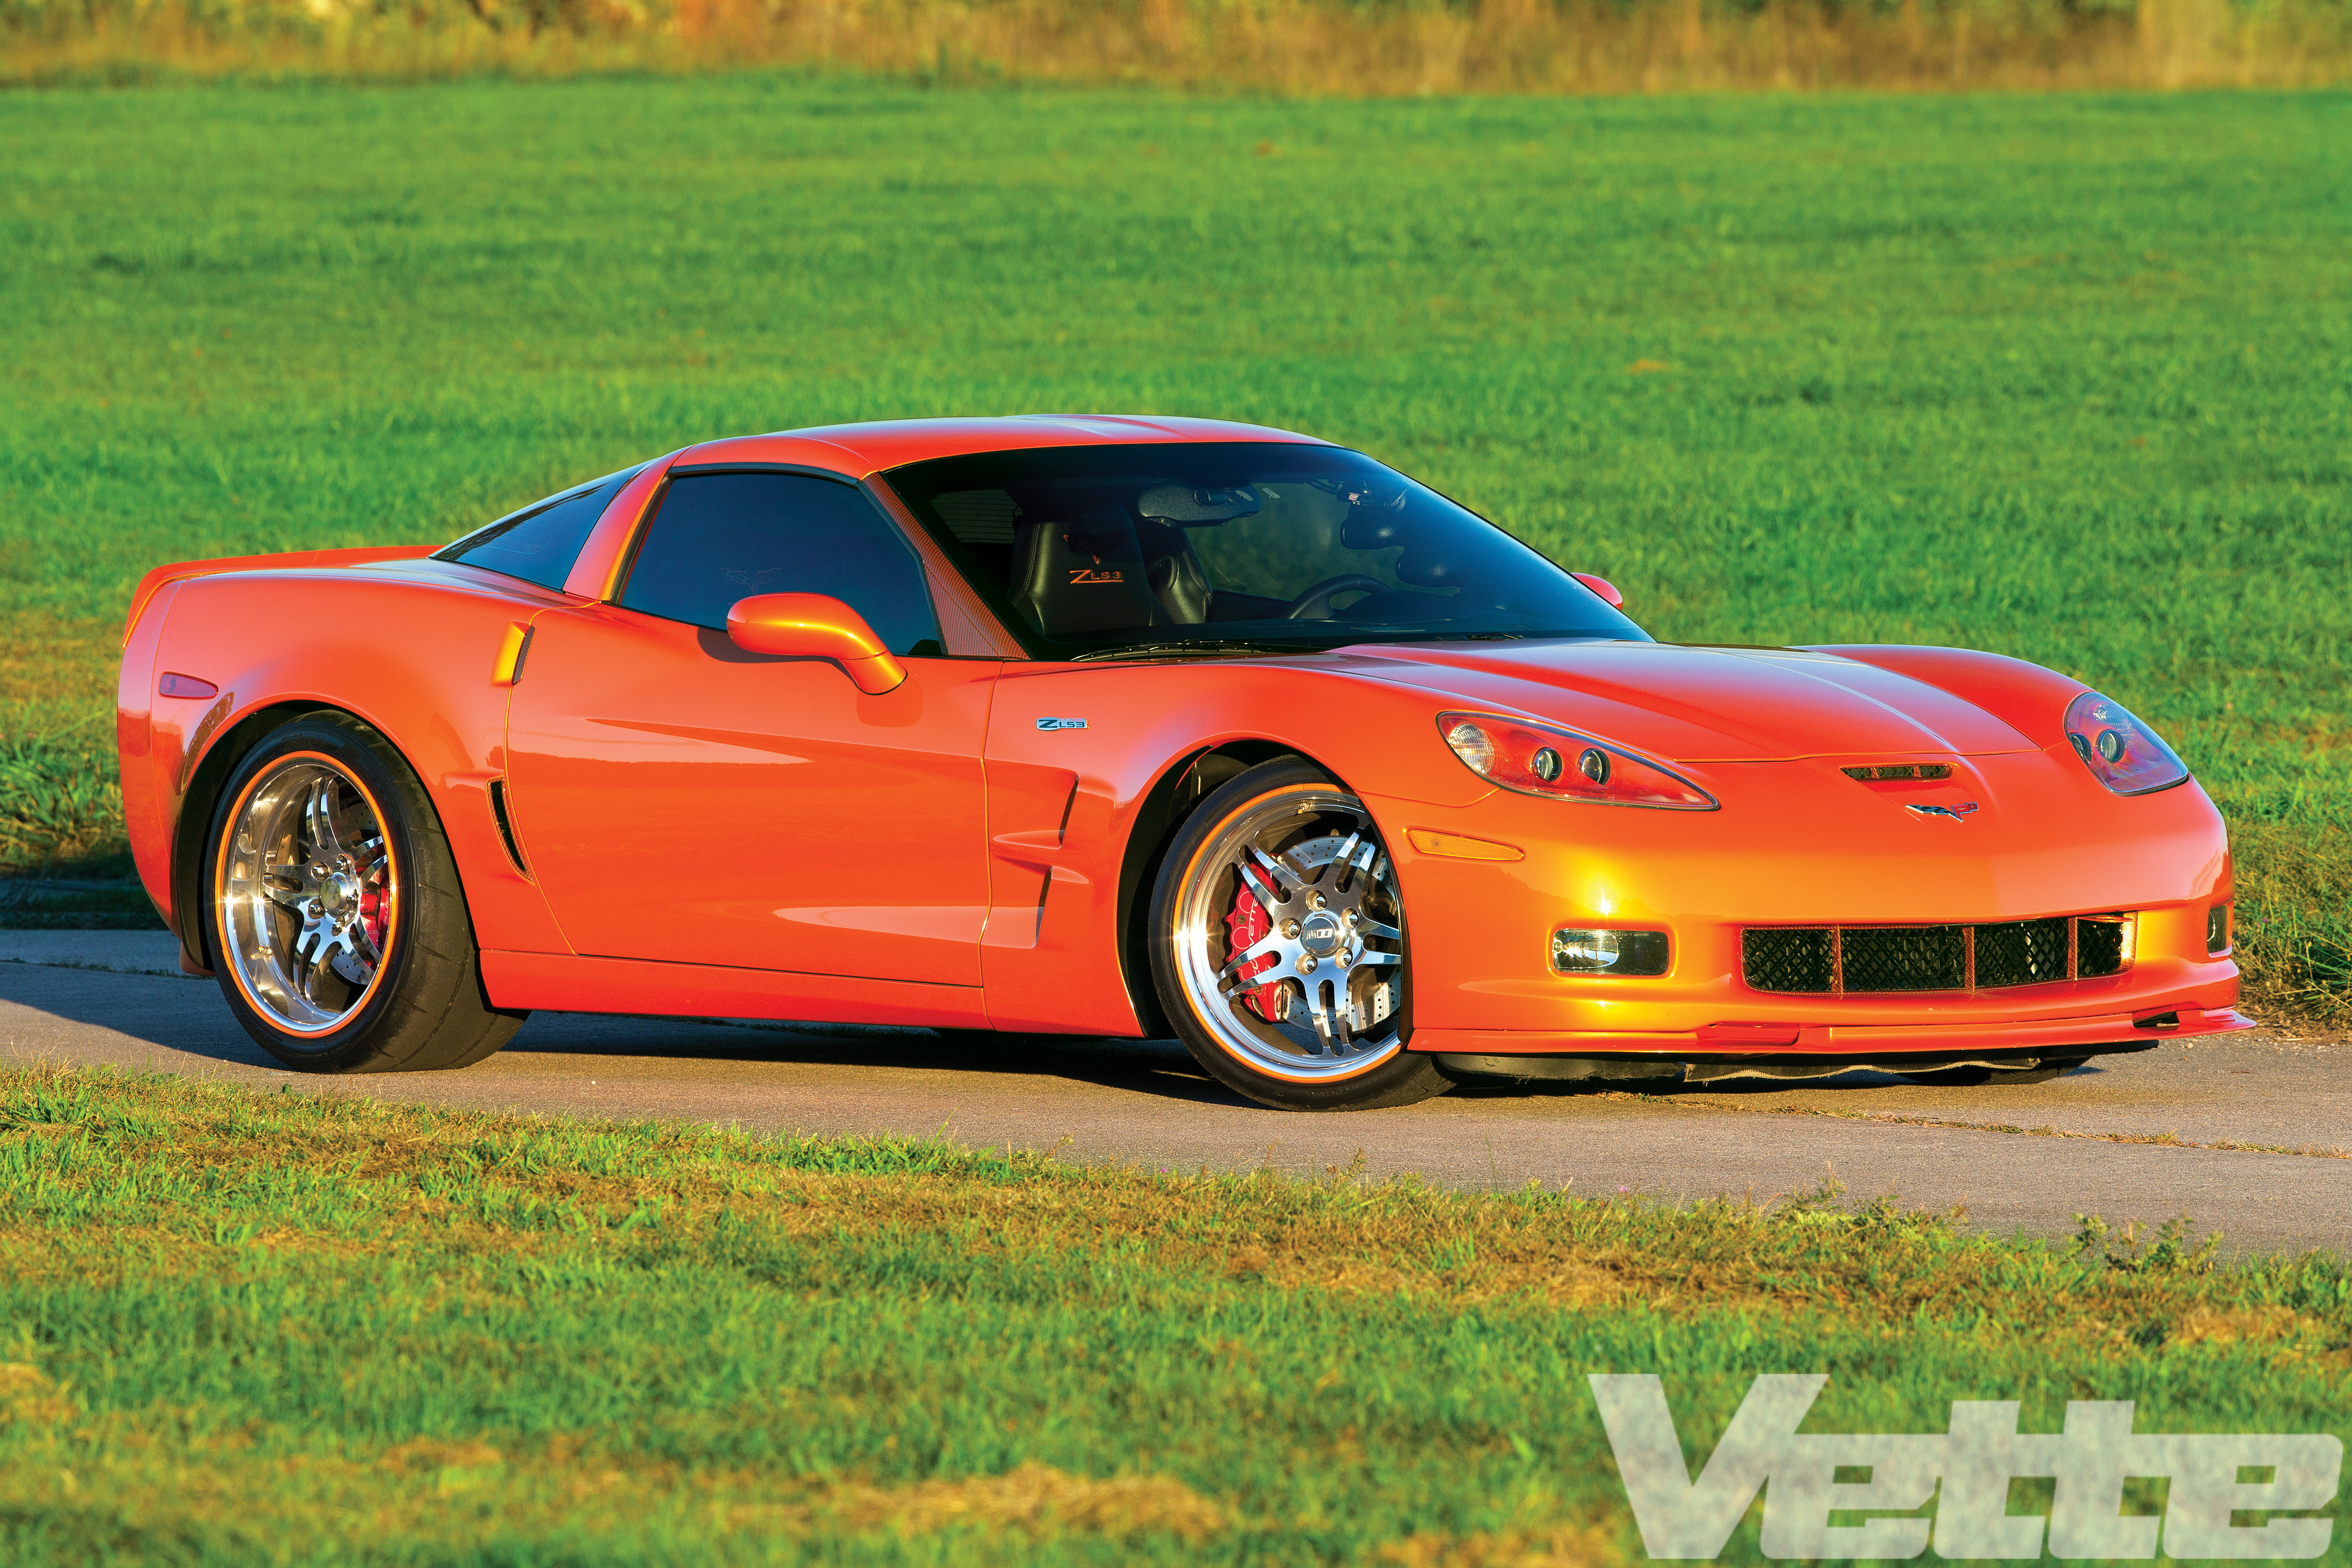 2008 chevrolet corvette c6 coupe pictures information and specs auto. Black Bedroom Furniture Sets. Home Design Ideas